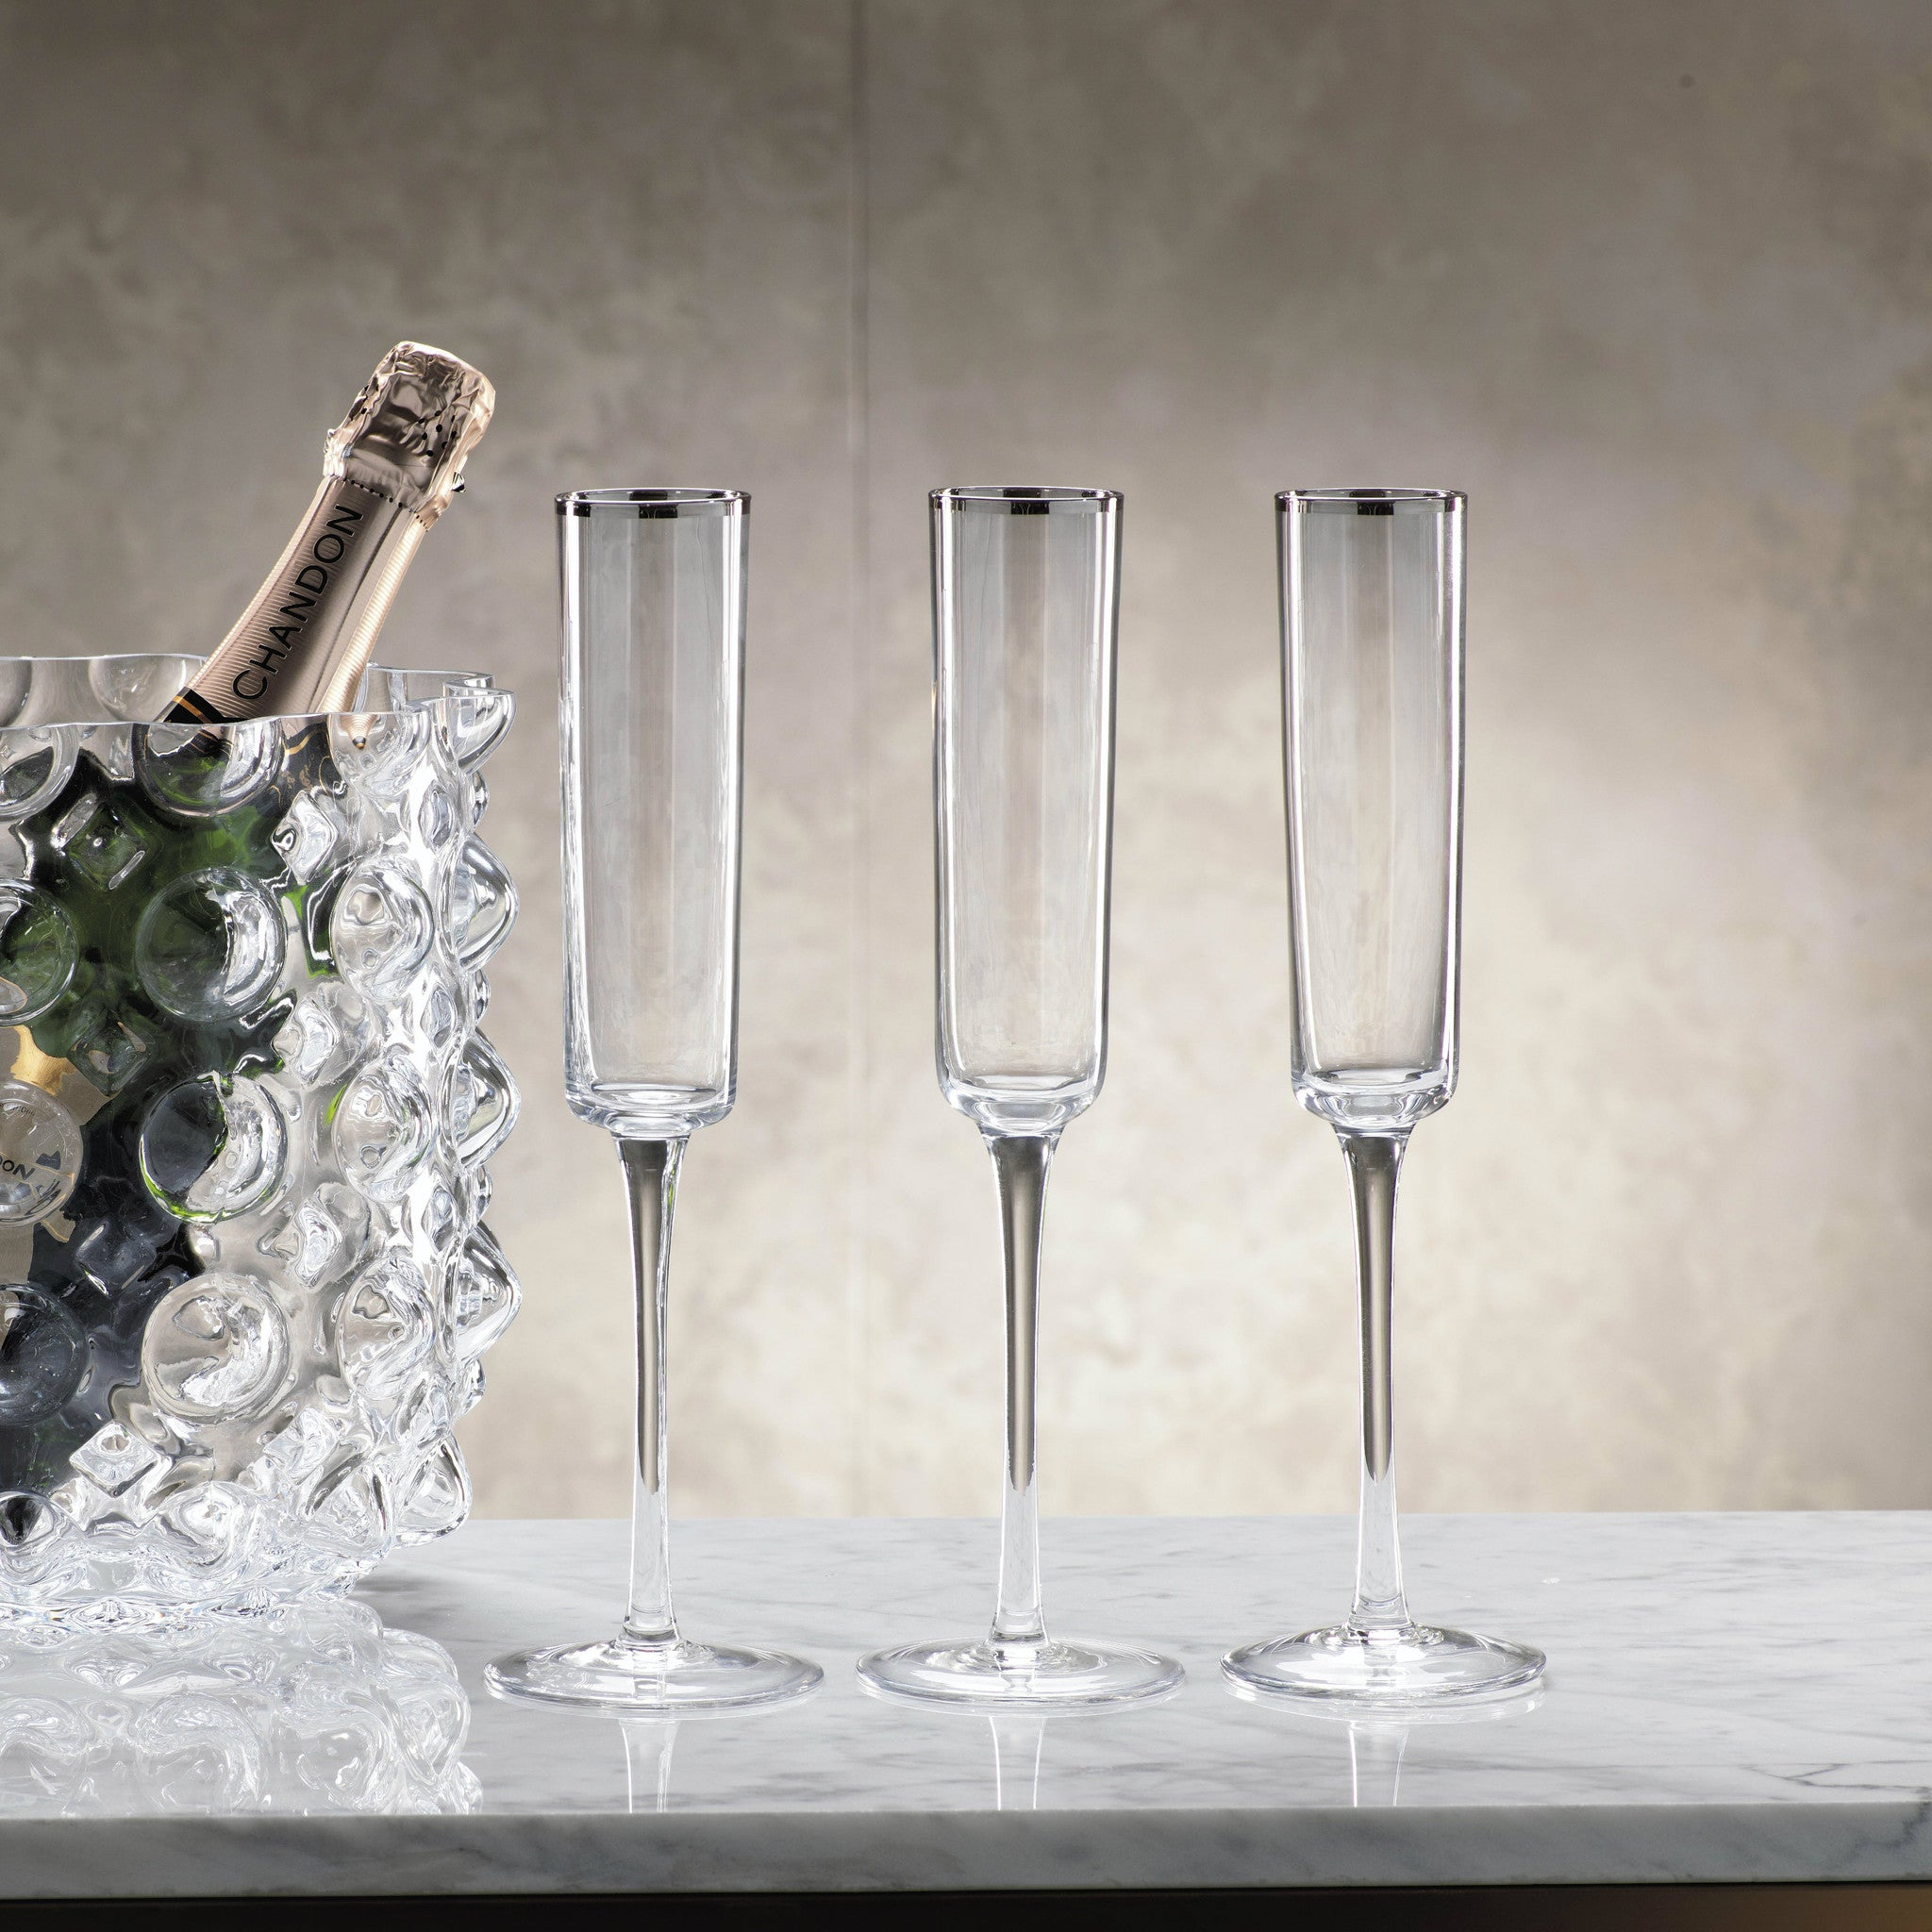 Tall Flutes with Silver Rim - Set of 6 - CARLYLE AVENUE